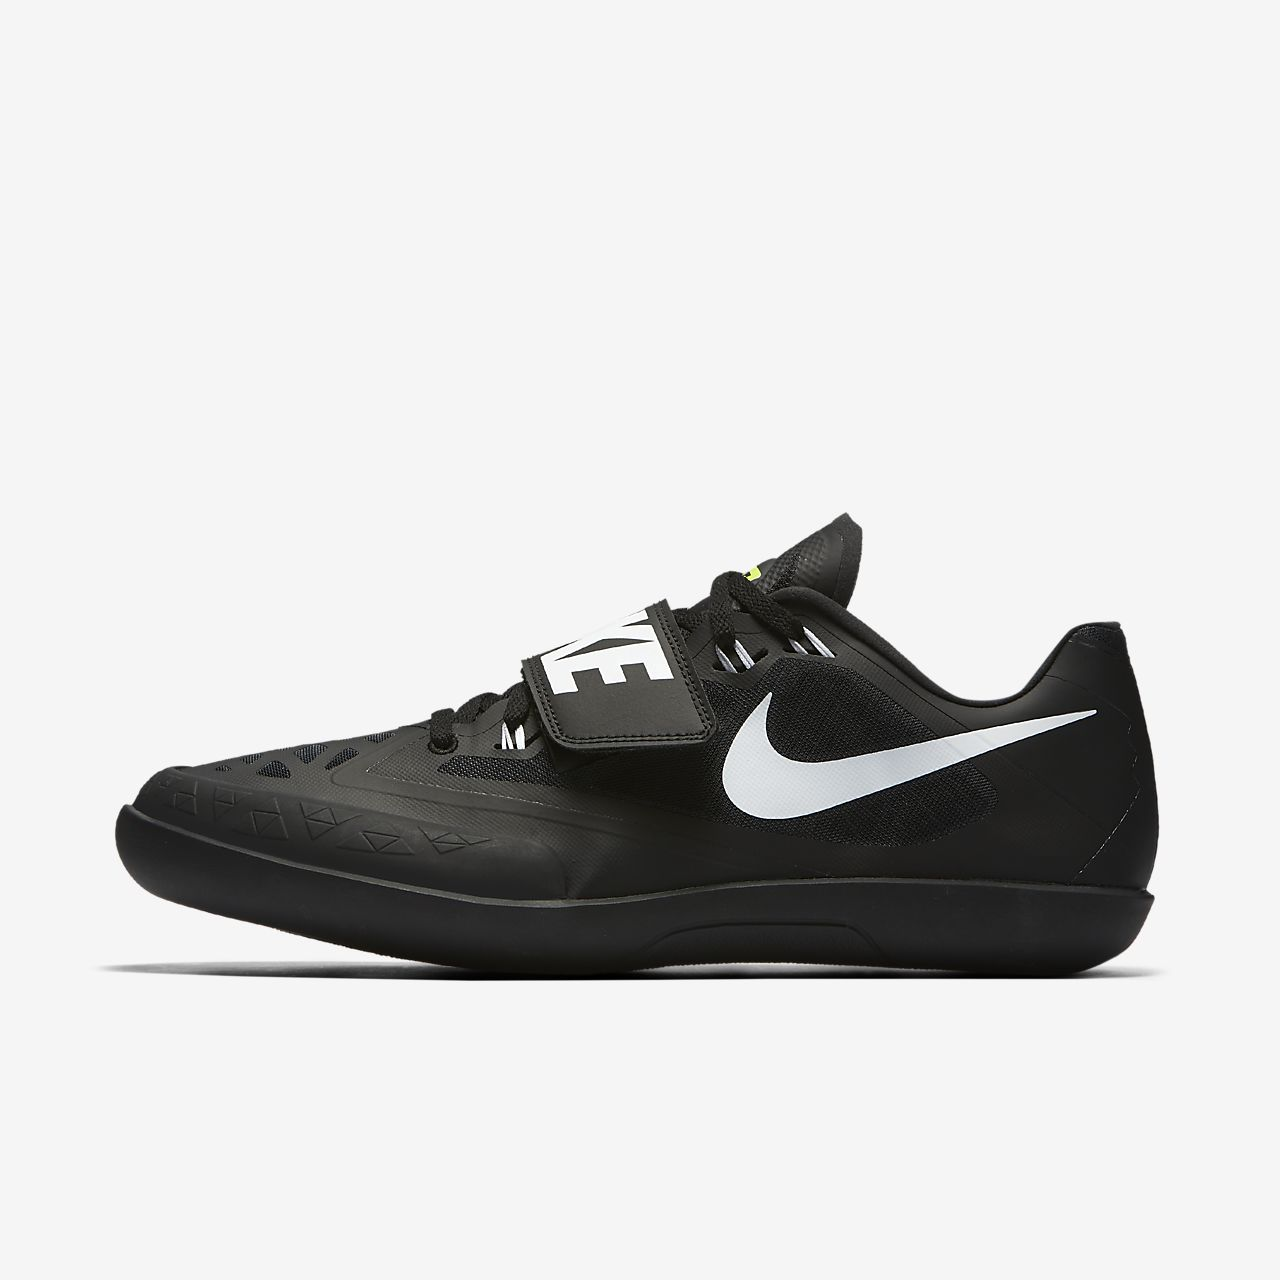 ... Nike Zoom SD 4 Unisex Throwing Shoe